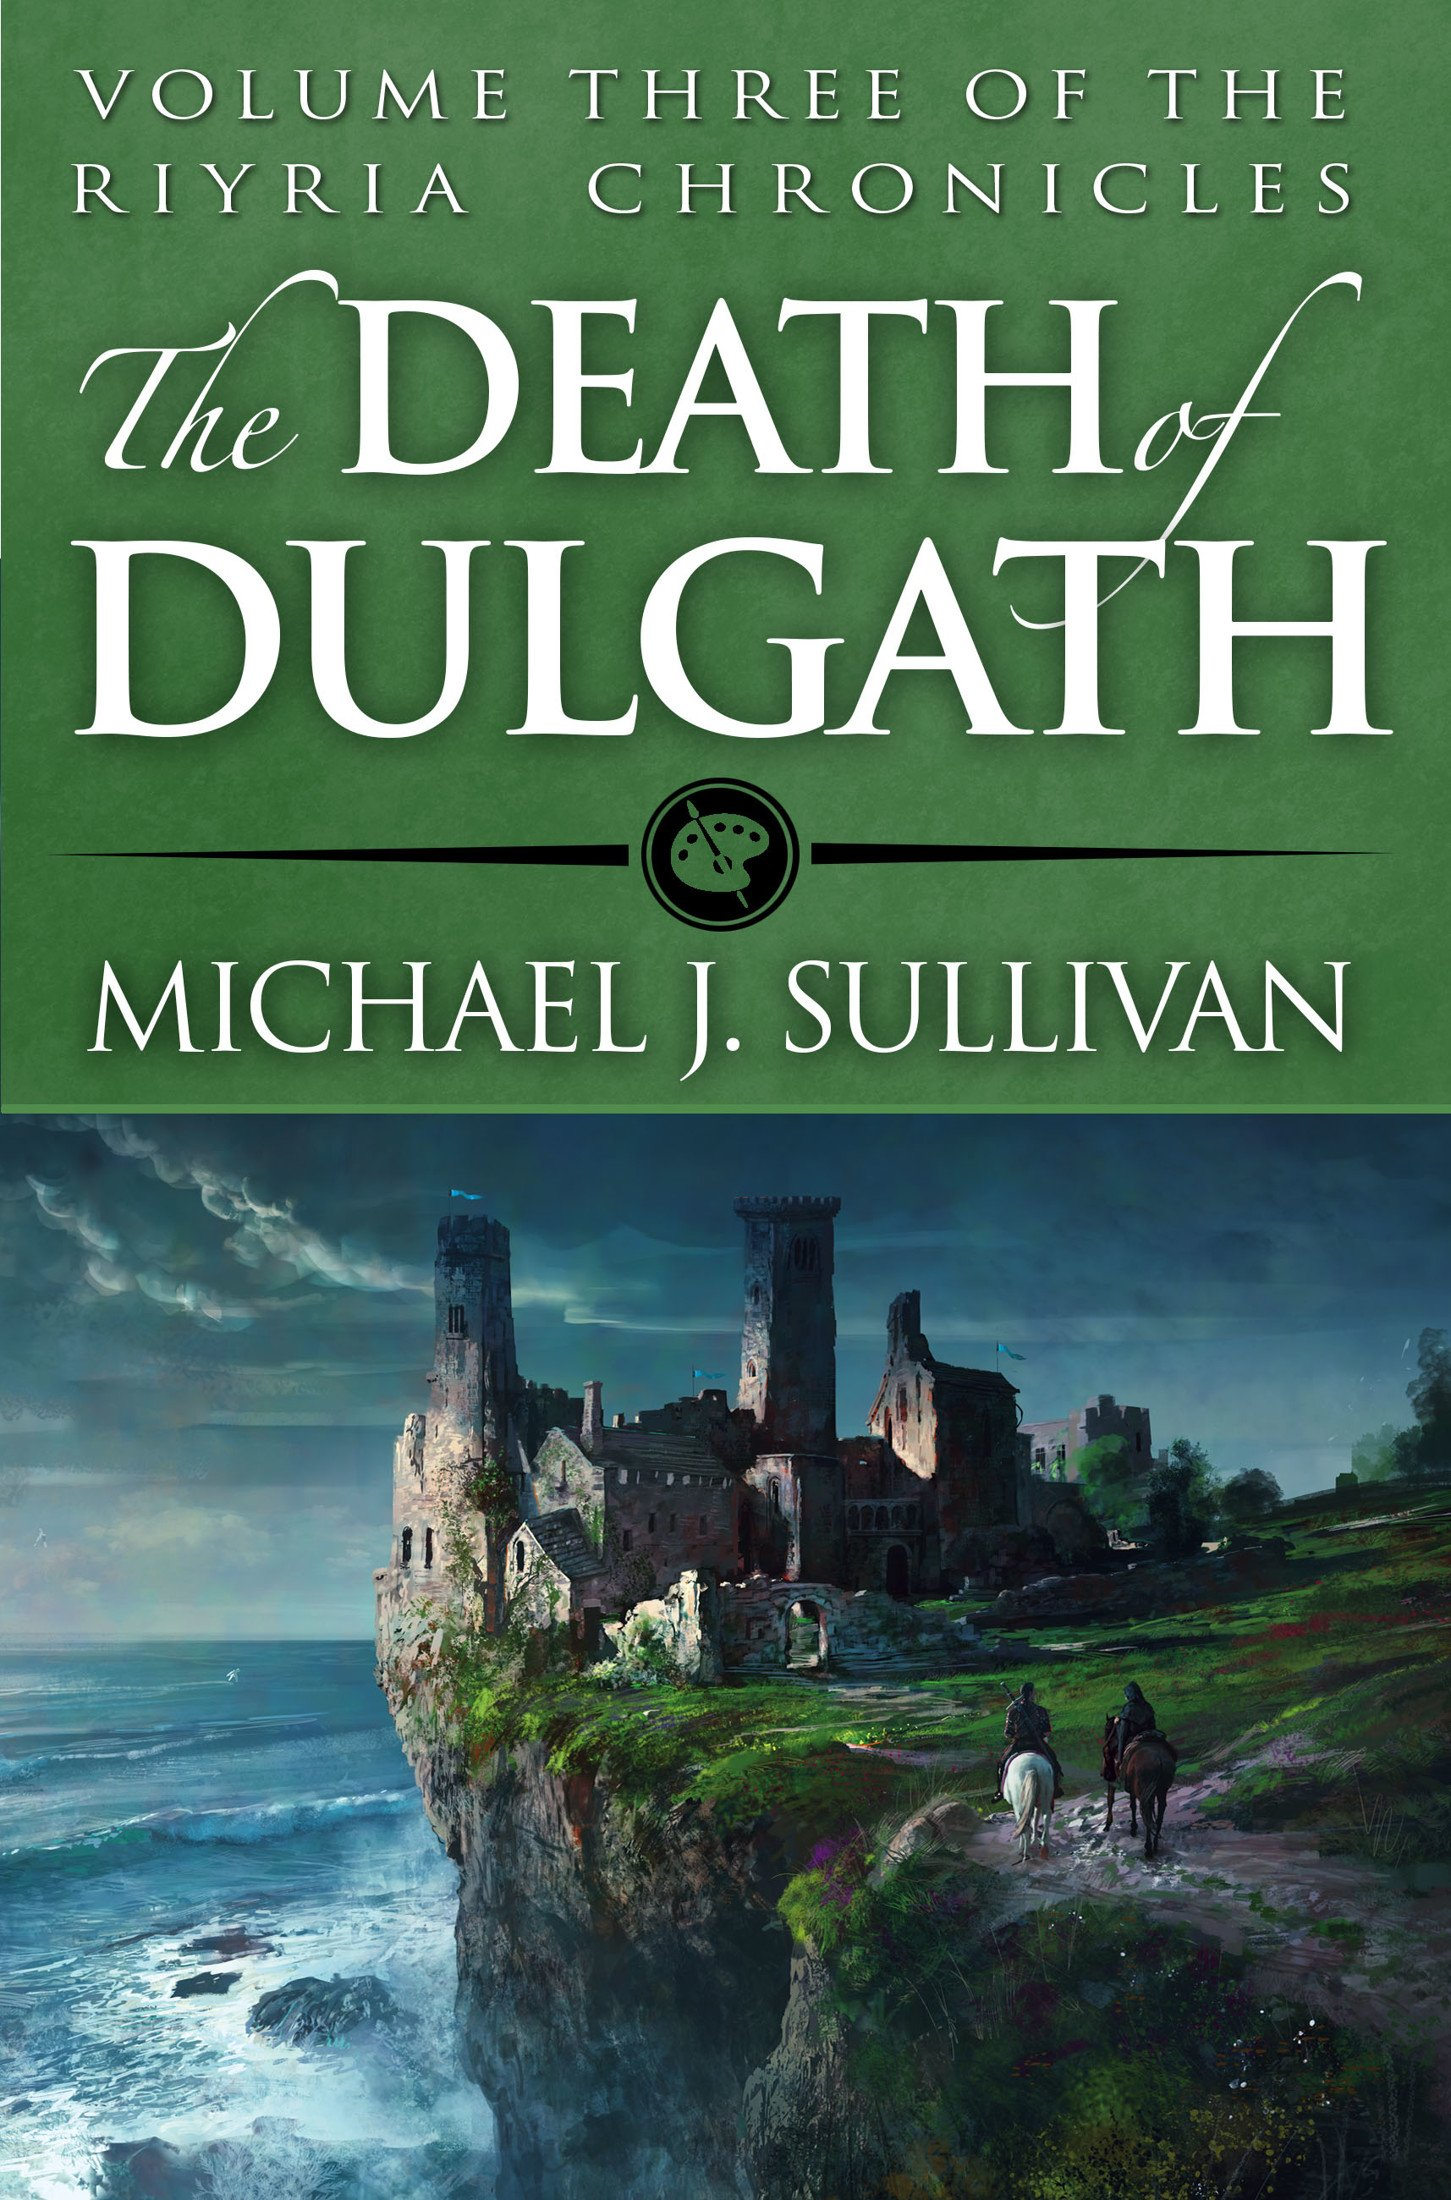 The Riyria Chronicles 03 - The Death of Dulgath - Michael J. Sullivan